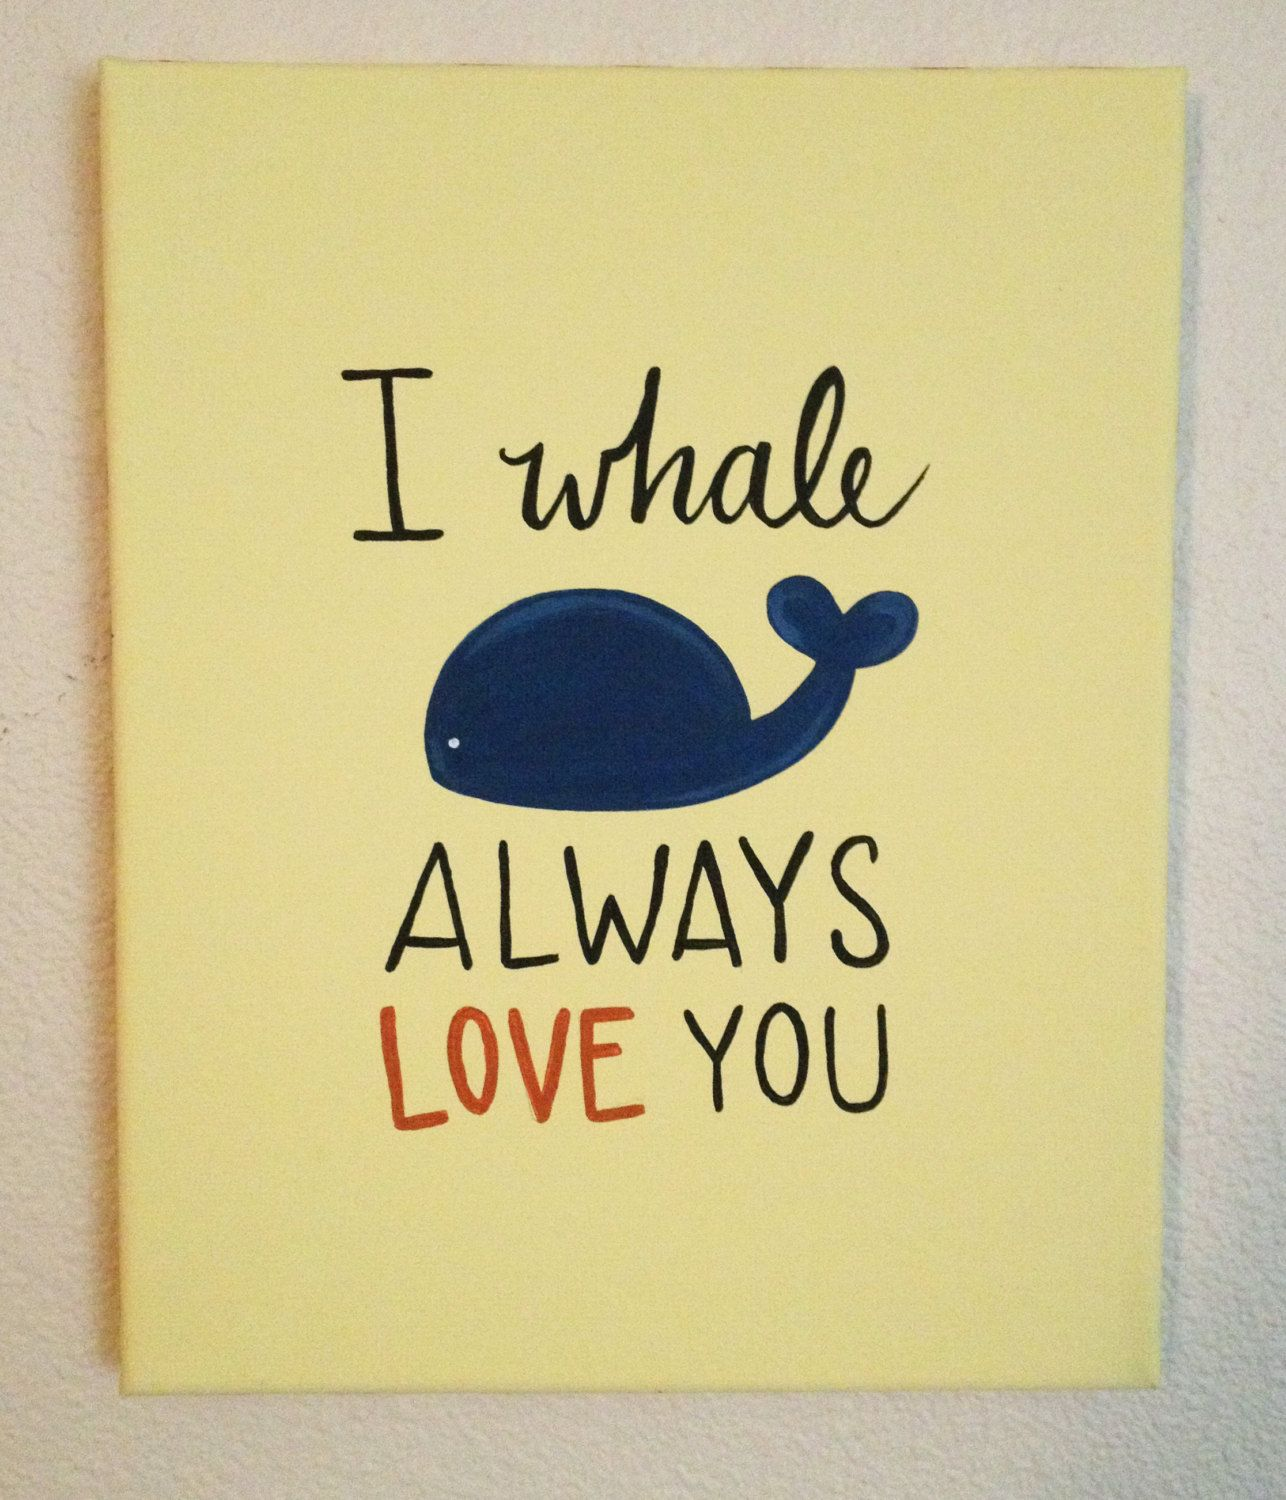 I Whale Always Love You Hand Painted Wall Art | Walls, Etsy and Babies